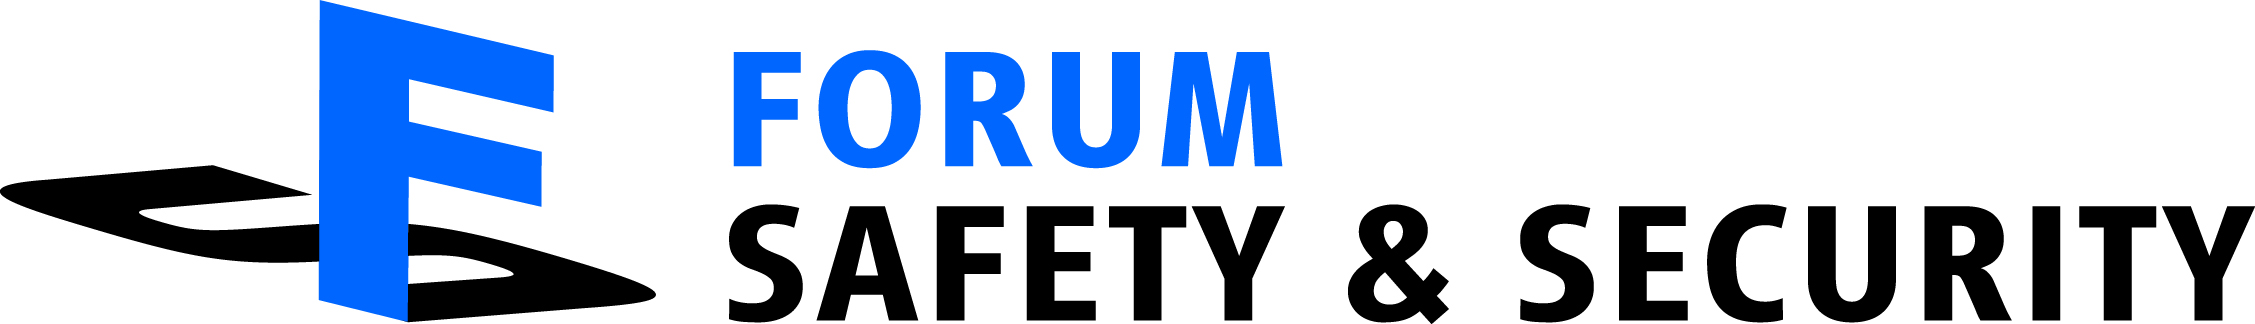 Forum Safety & Security 2020